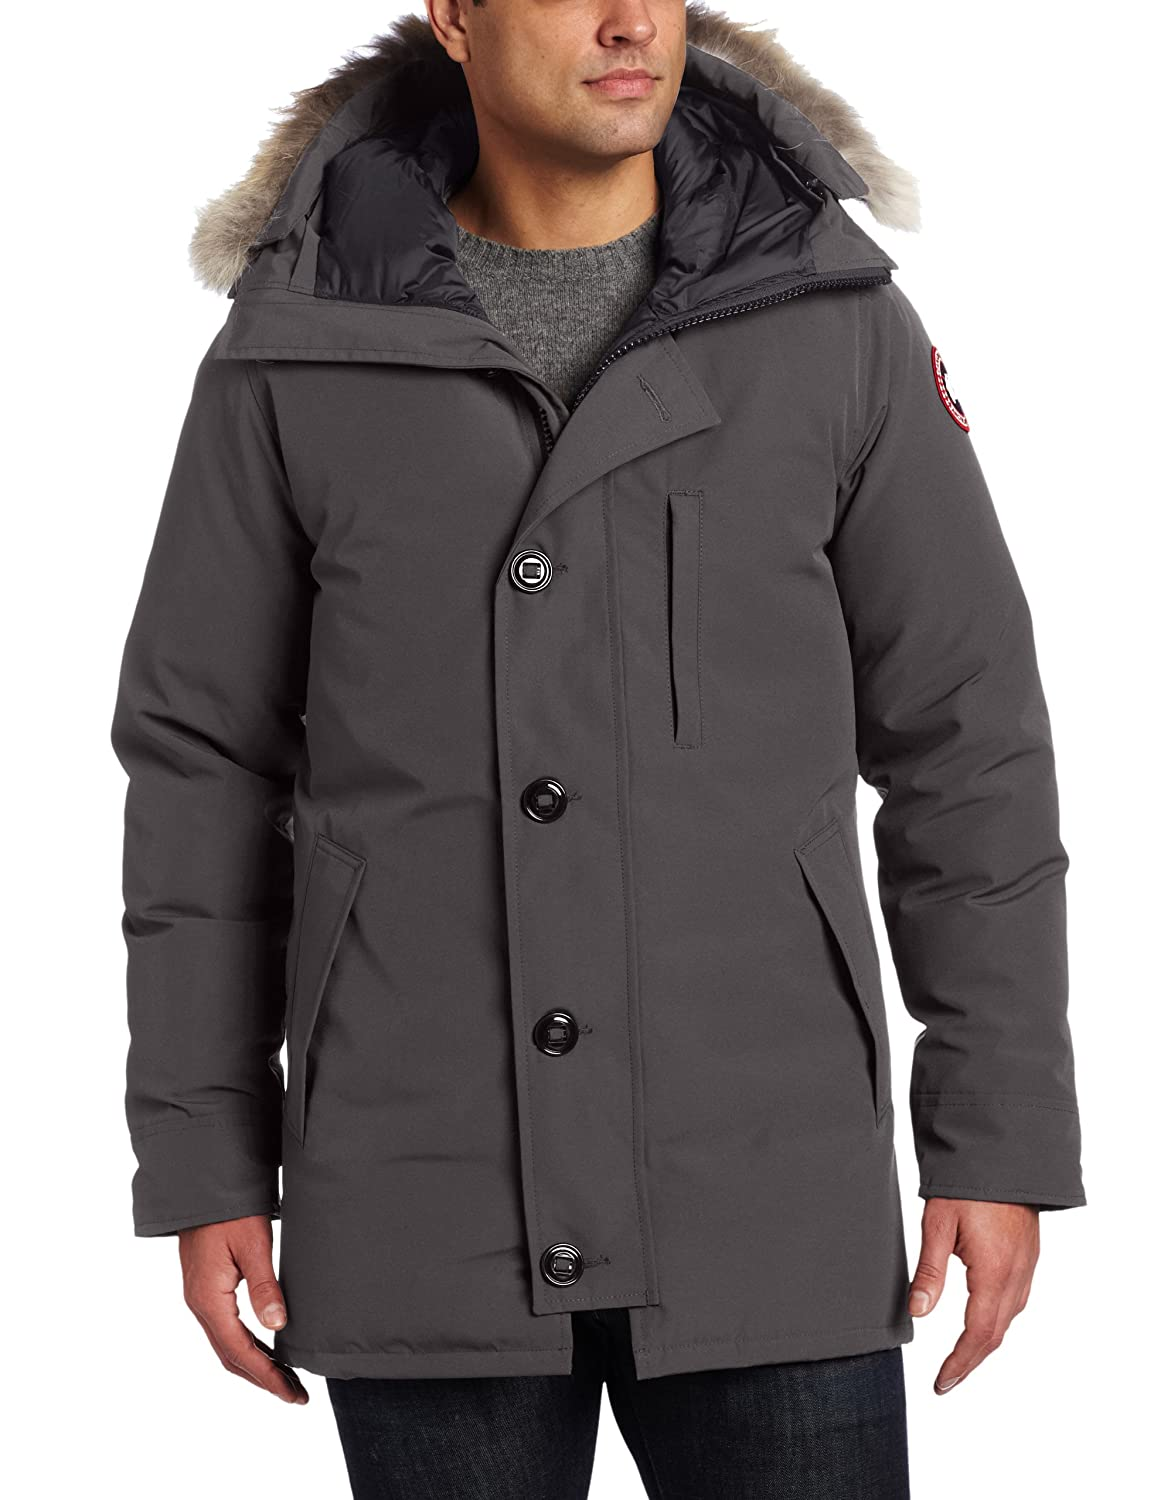 Canada Goose toronto replica official - Amazon.com: Canada Goose Banff Parka Coat: Sports & Outdoors